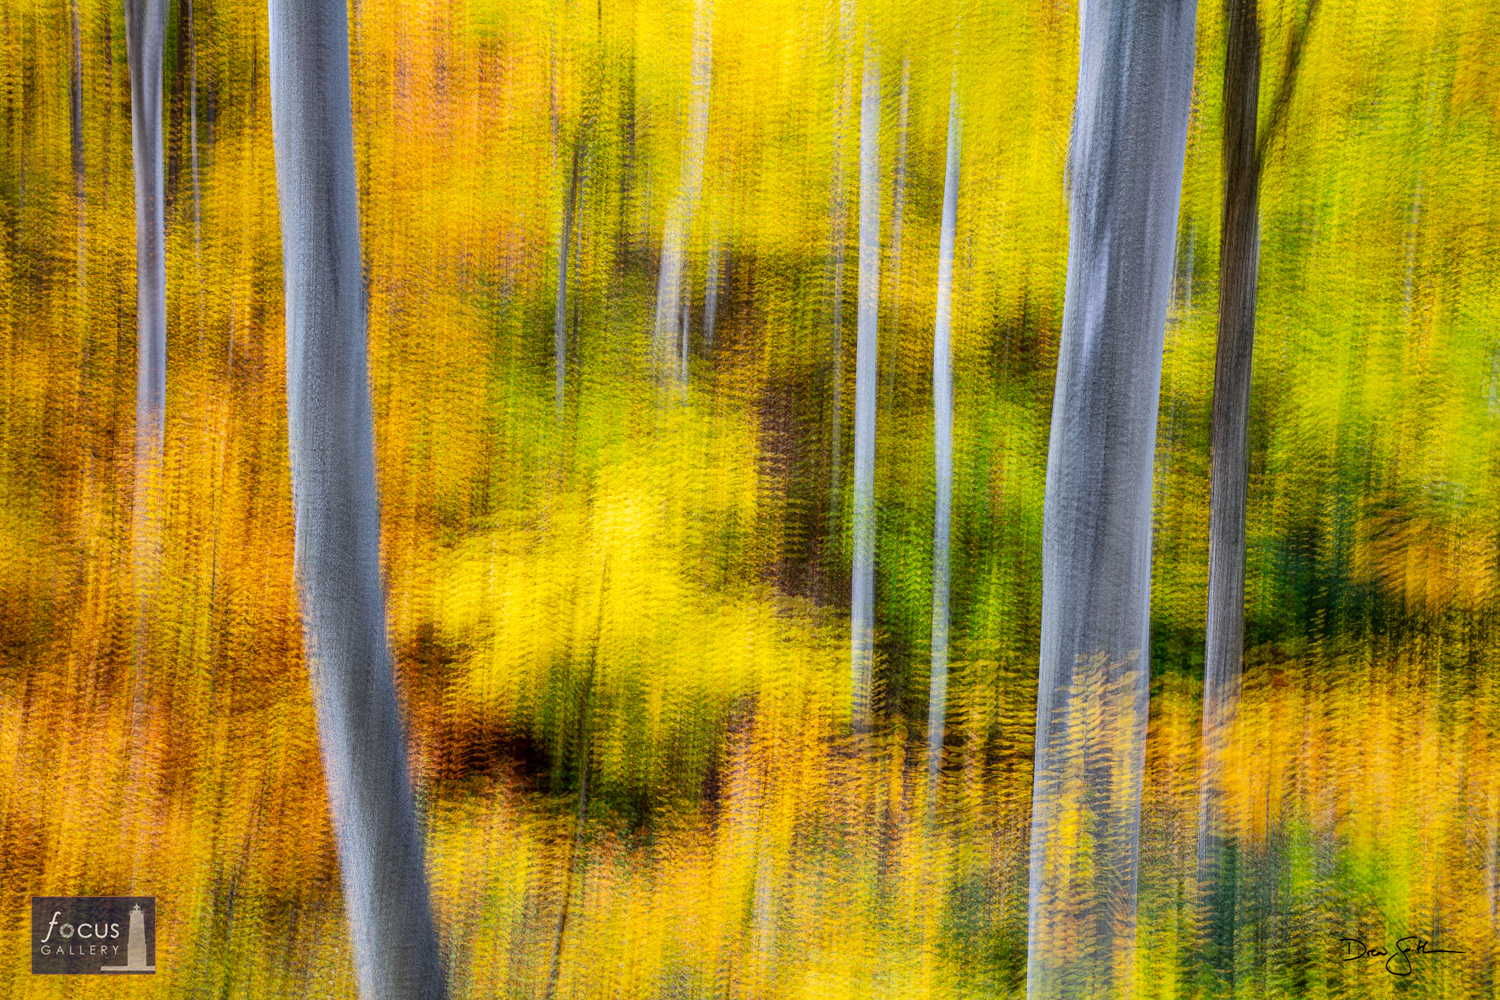 Photo © Drew Smith On an autumn hike at the Whaleback Natural Area I was struck by the colors of the trees and the shapes made...